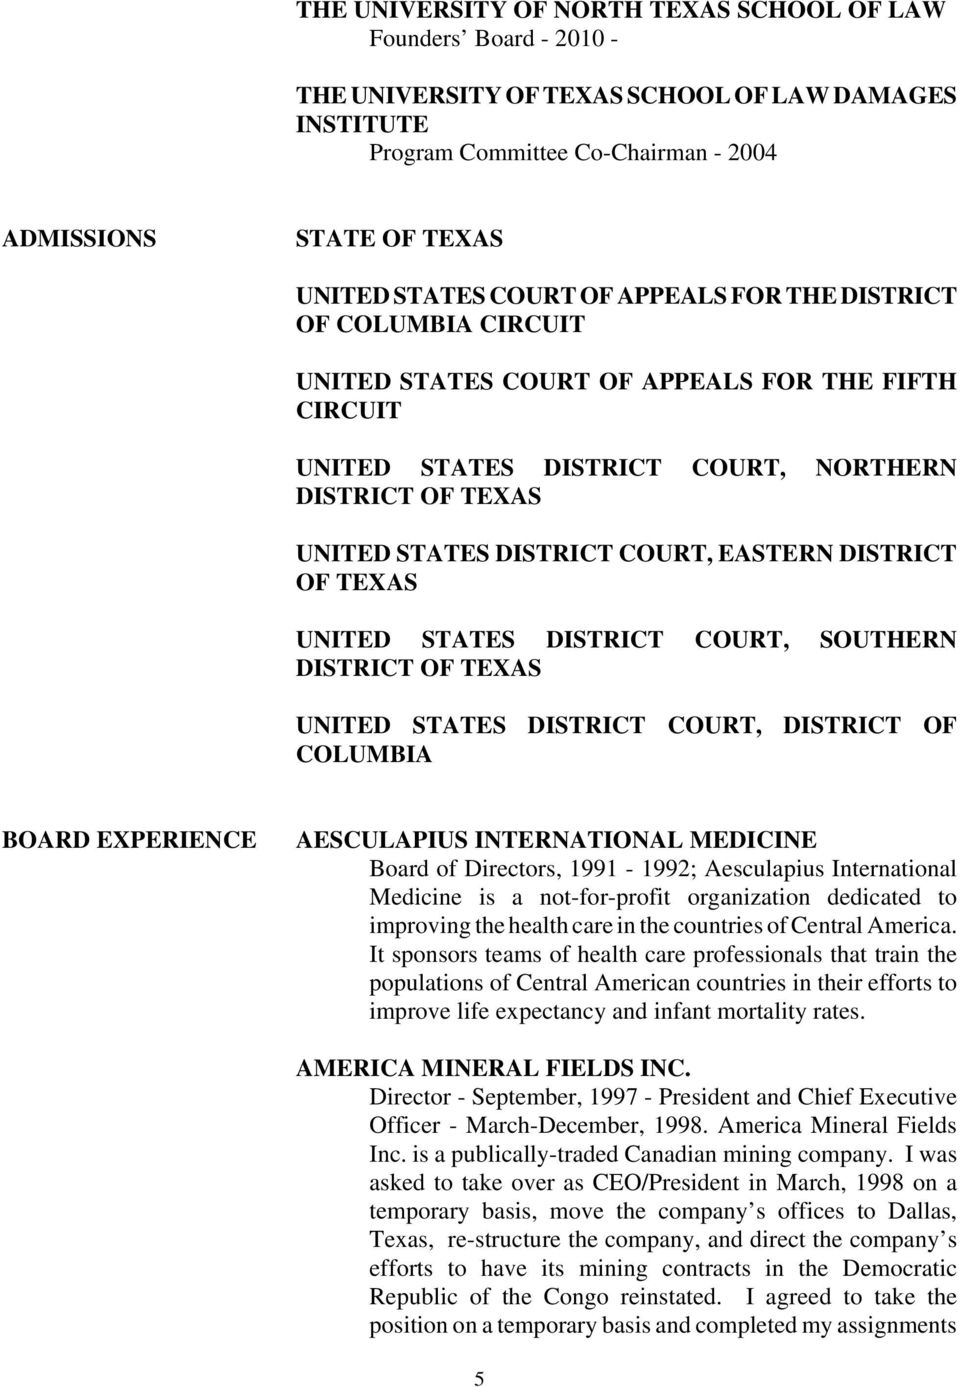 COURT, EASTERN DISTRICT OF TEXAS UNITED STATES DISTRICT COURT, SOUTHERN DISTRICT OF TEXAS UNITED STATES DISTRICT COURT, DISTRICT OF COLUMBIA BOARD EXPERIENCE AESCULAPIUS INTERNATIONAL MEDICINE Board